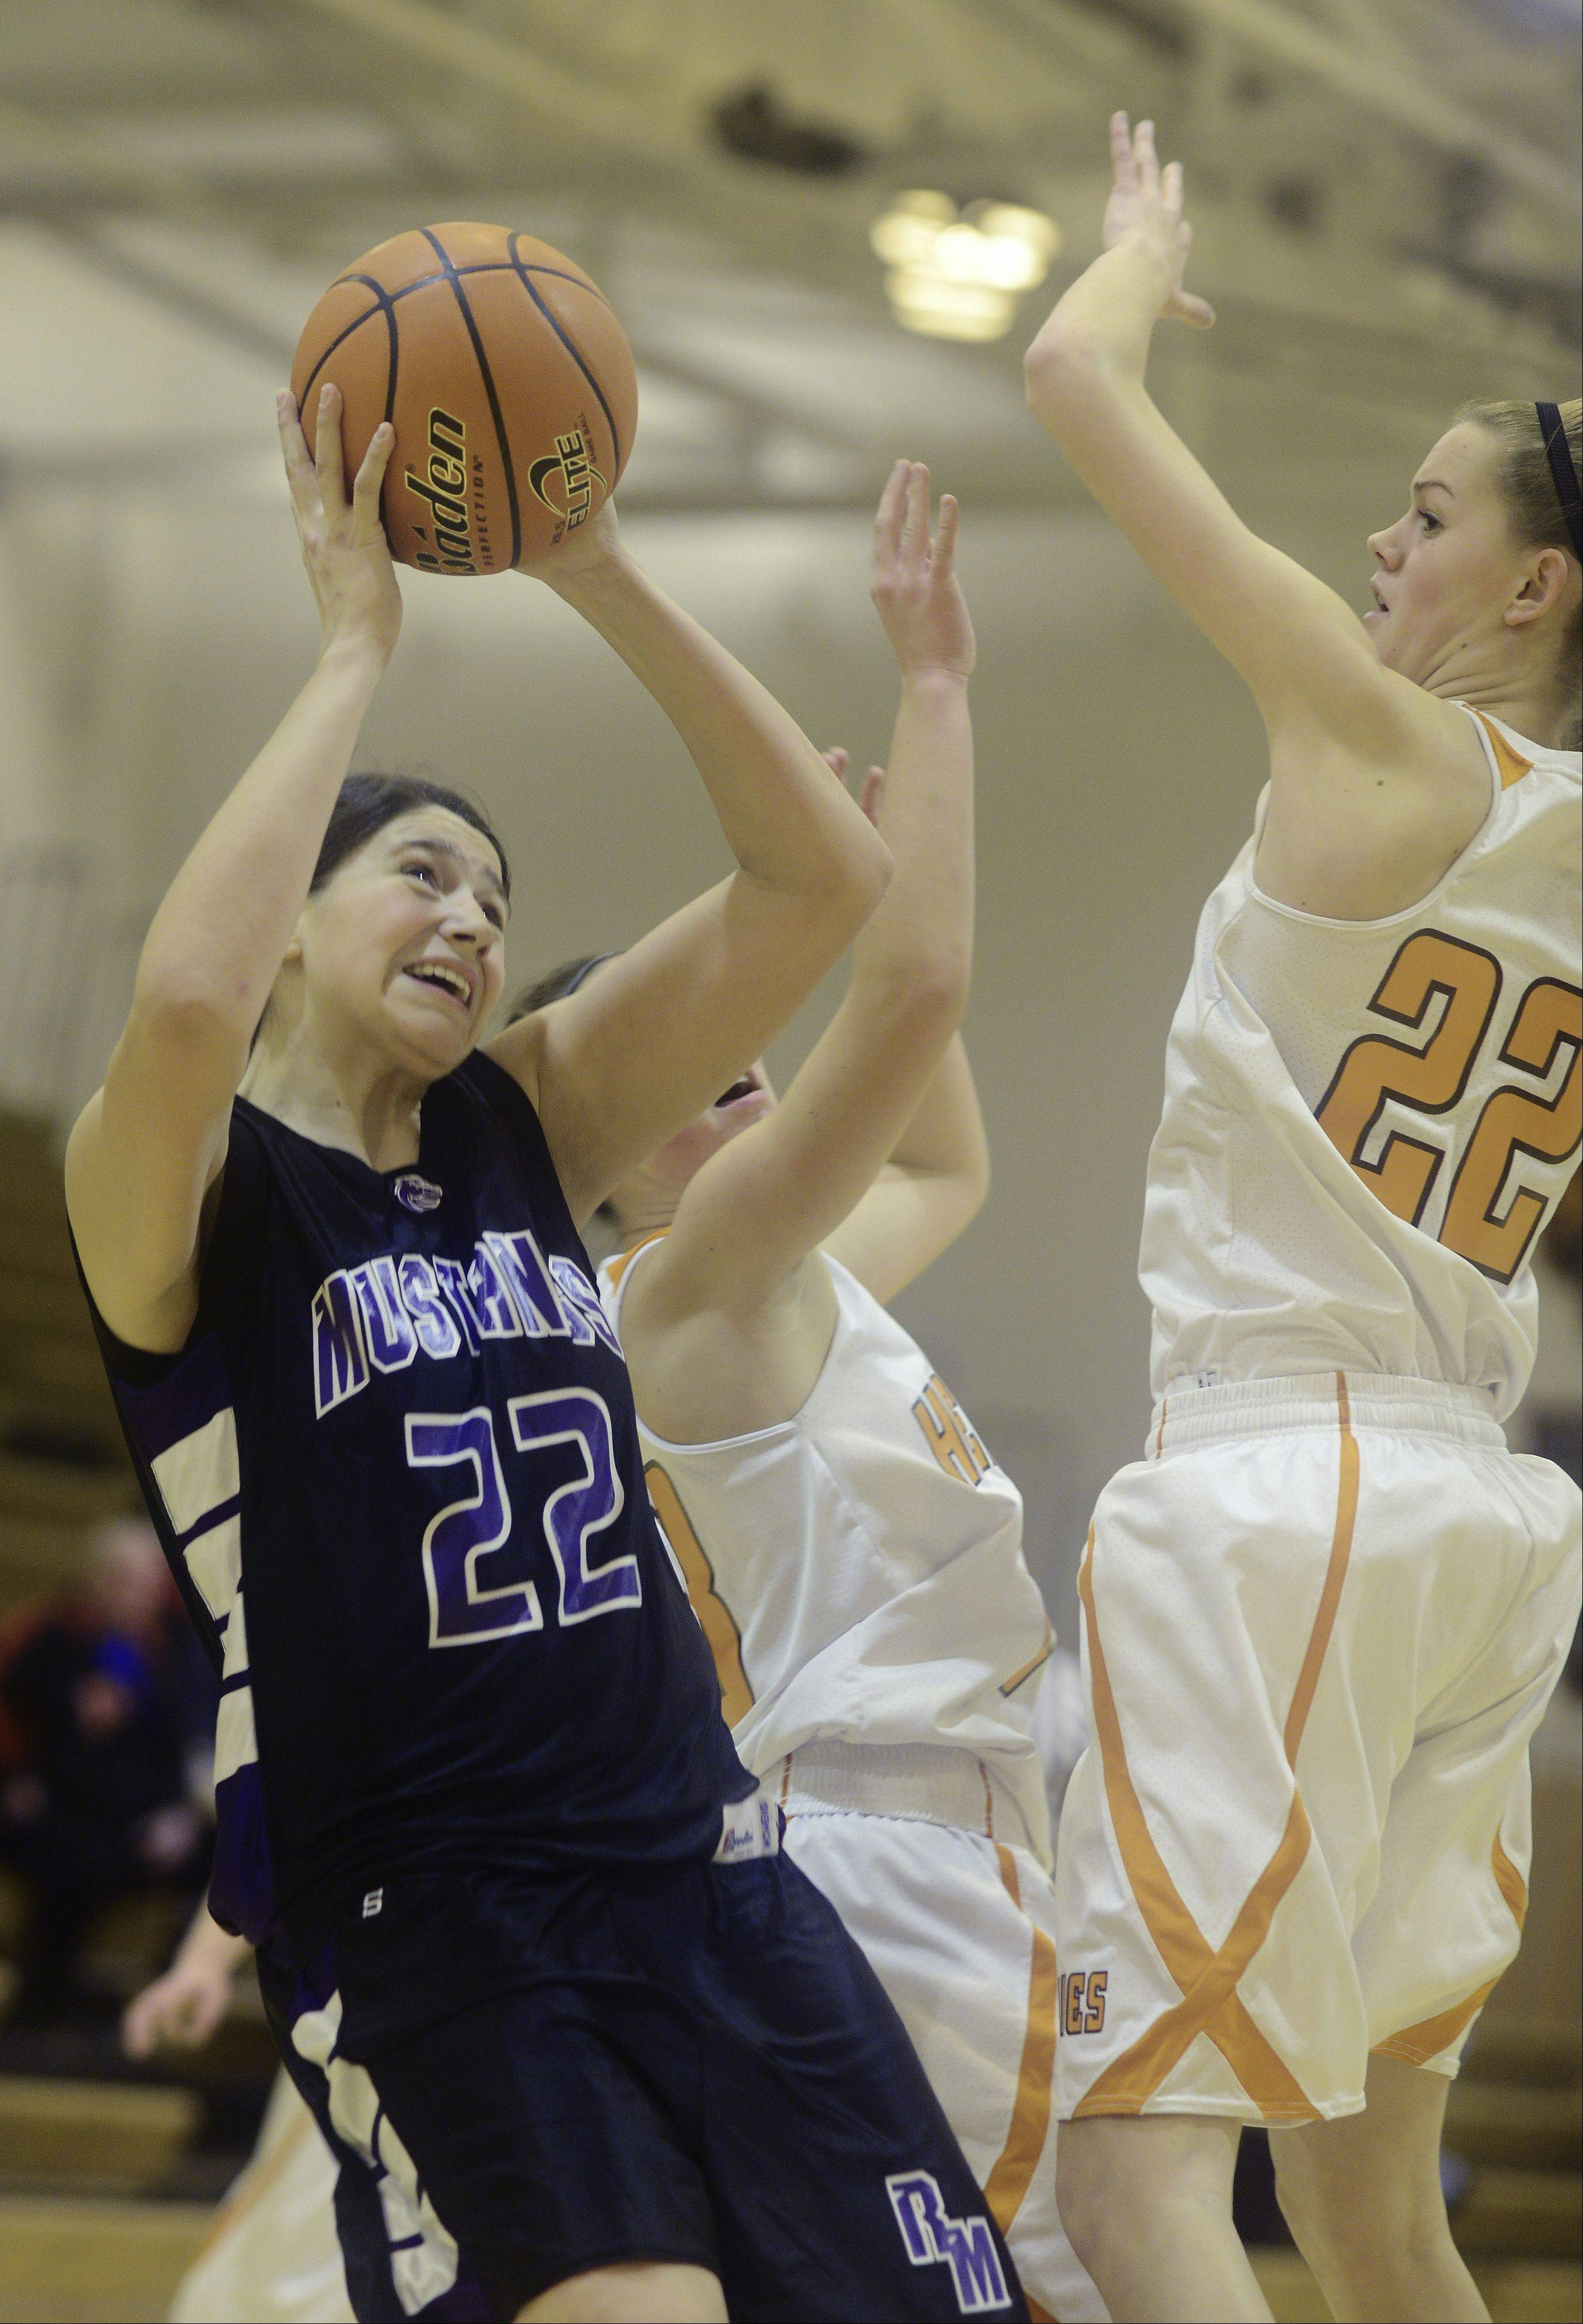 JOE LEWNARD/jlewnard@dailyherald.com Rolling Meadows' Ashley Montanez, left, takes a shot against the defense of Hersey's Erica Hill.